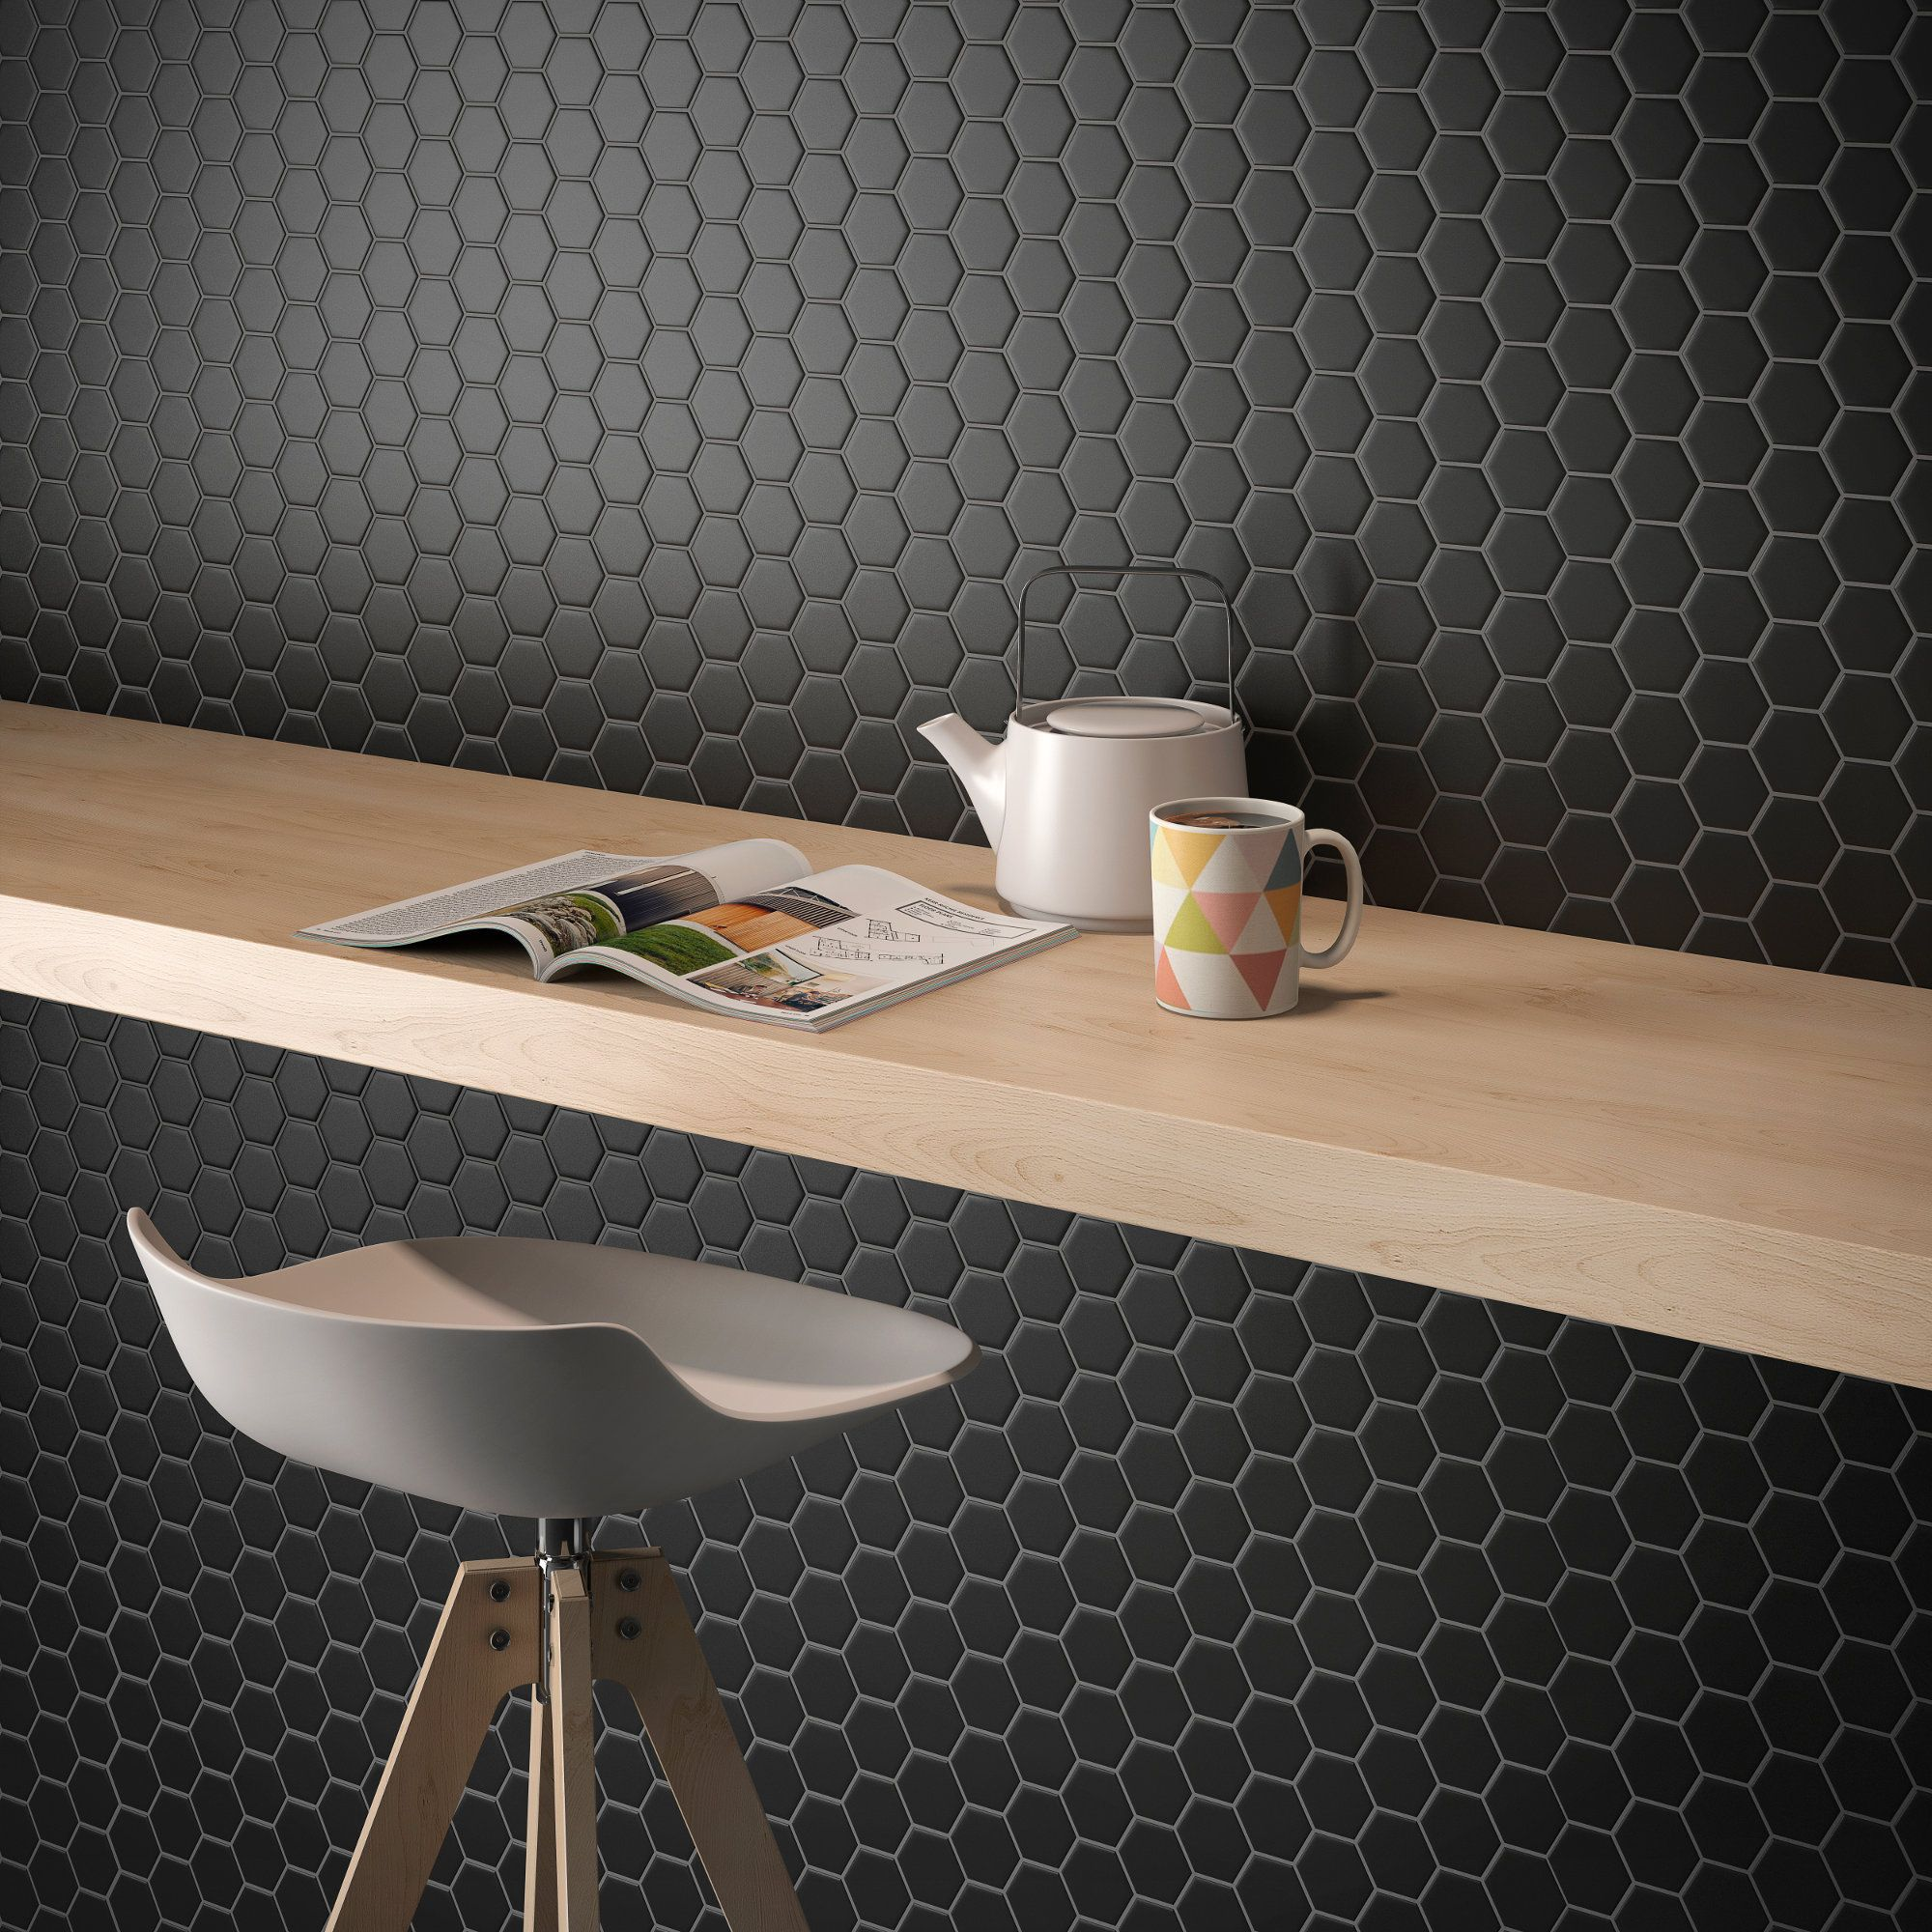 Black matte cc mosaics collection ceramic tiles by roca cc small black hexagon mosaic tiles for floors and walls also available in white grey small black hexagon mosaic hexagon tiles are a design classic and can dailygadgetfo Images